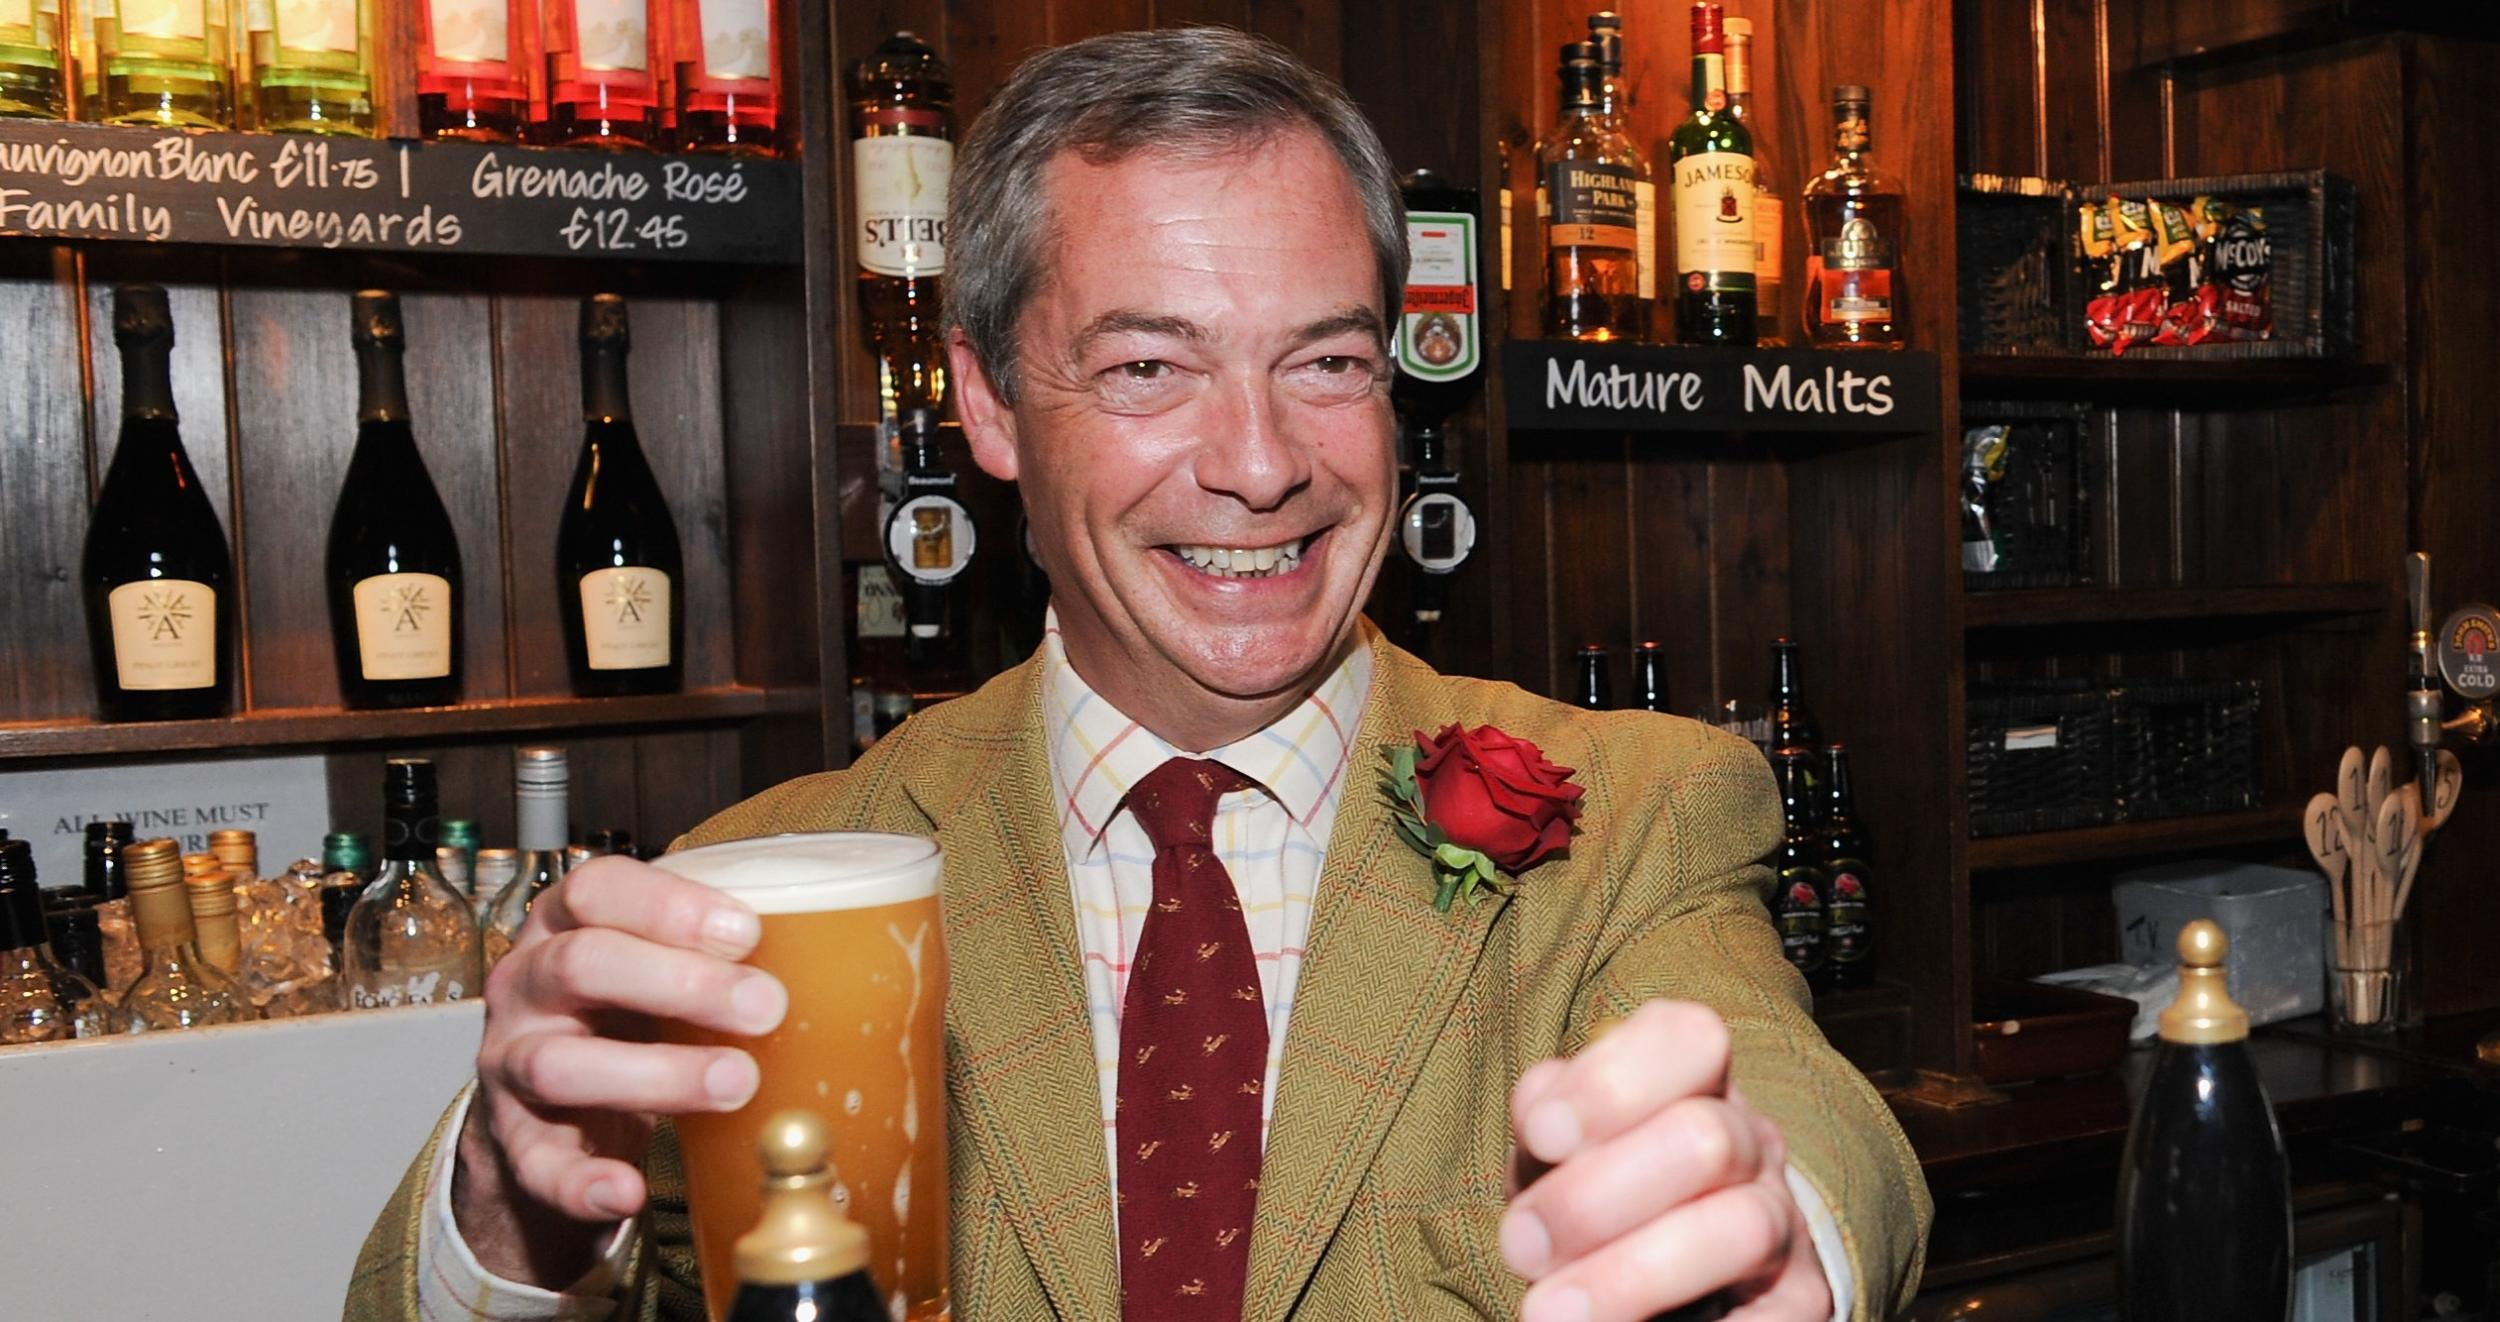 People are reporting Nigel Farage to the police for 'breaking 14 day quarantine' to go to the pub